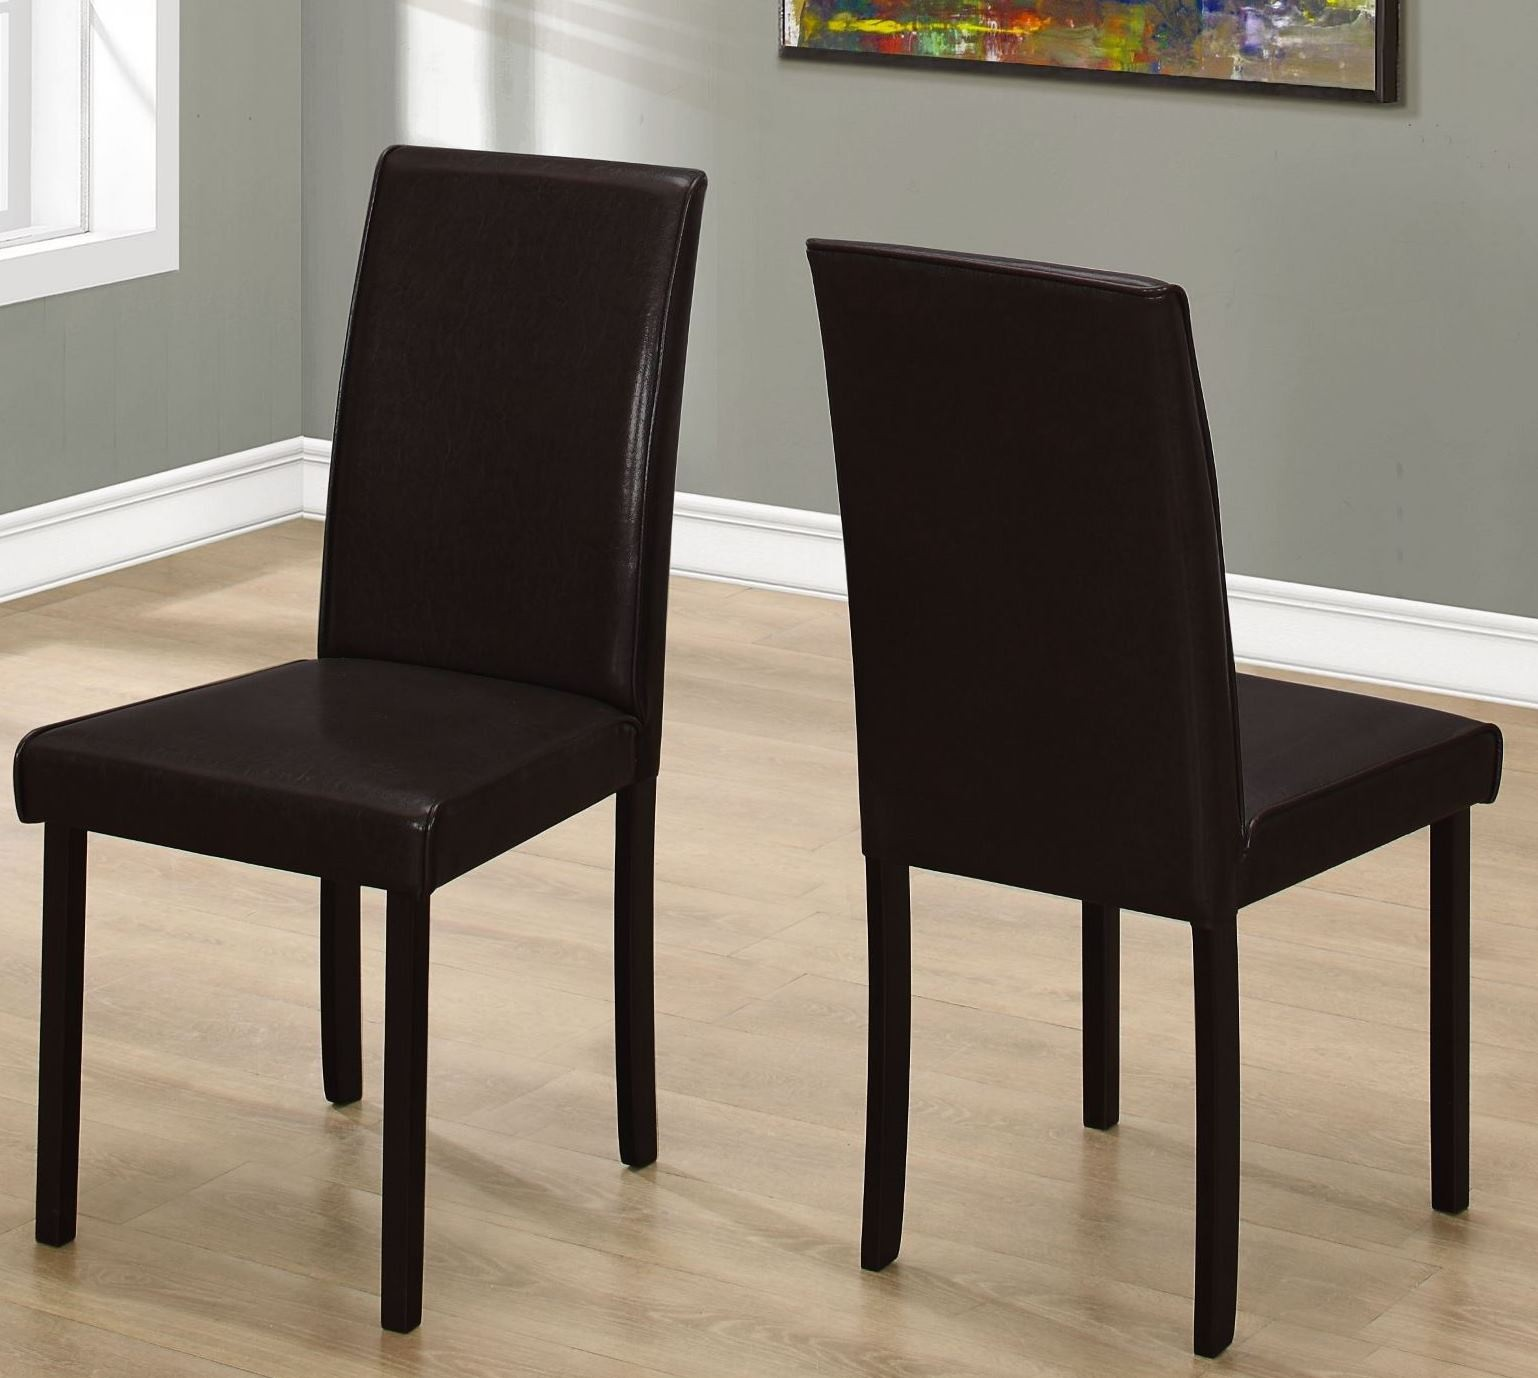 "Leahlyn Reddish Brown Arm Chair Set Of 2: Dark Brown Leather 36"" Dining Chair Set Of 2 From Monarch"